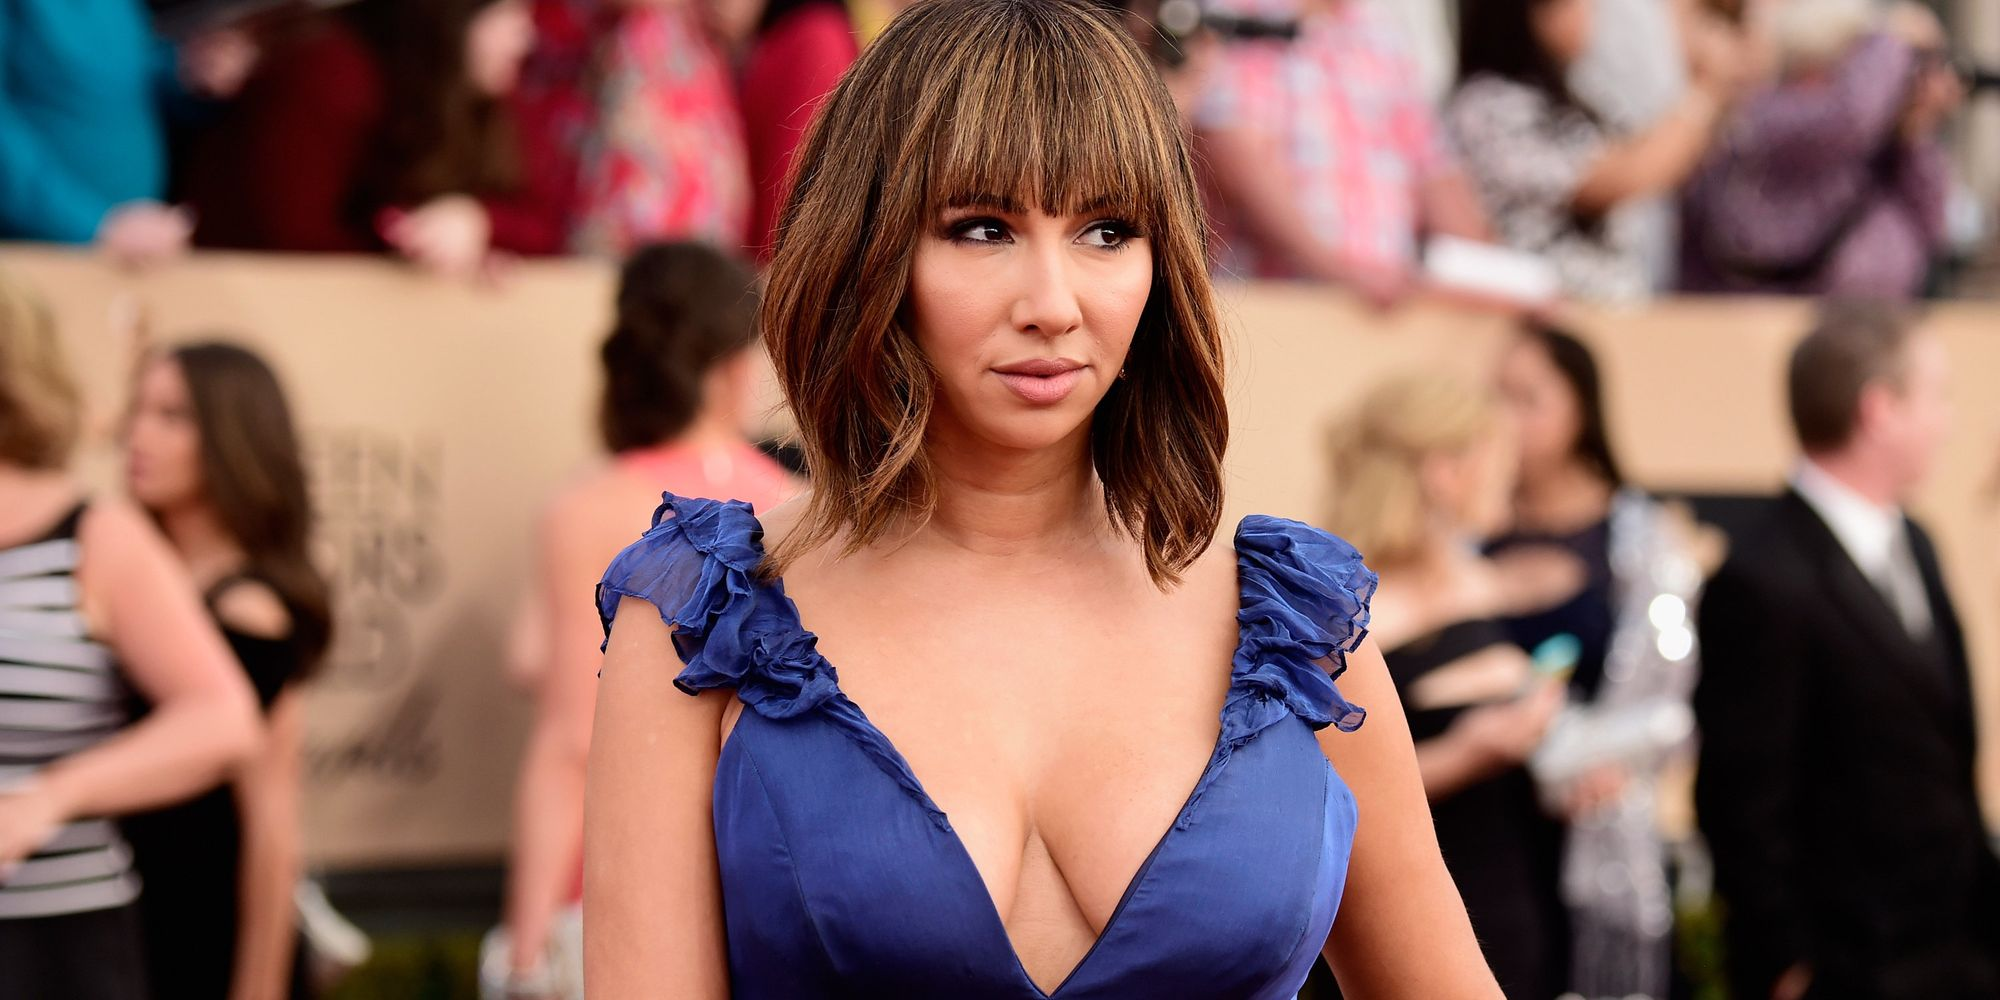 What An 'Awful' Accident Taught 'OITNB' Star Jackie Cruz About Beauty | The Huffington Post